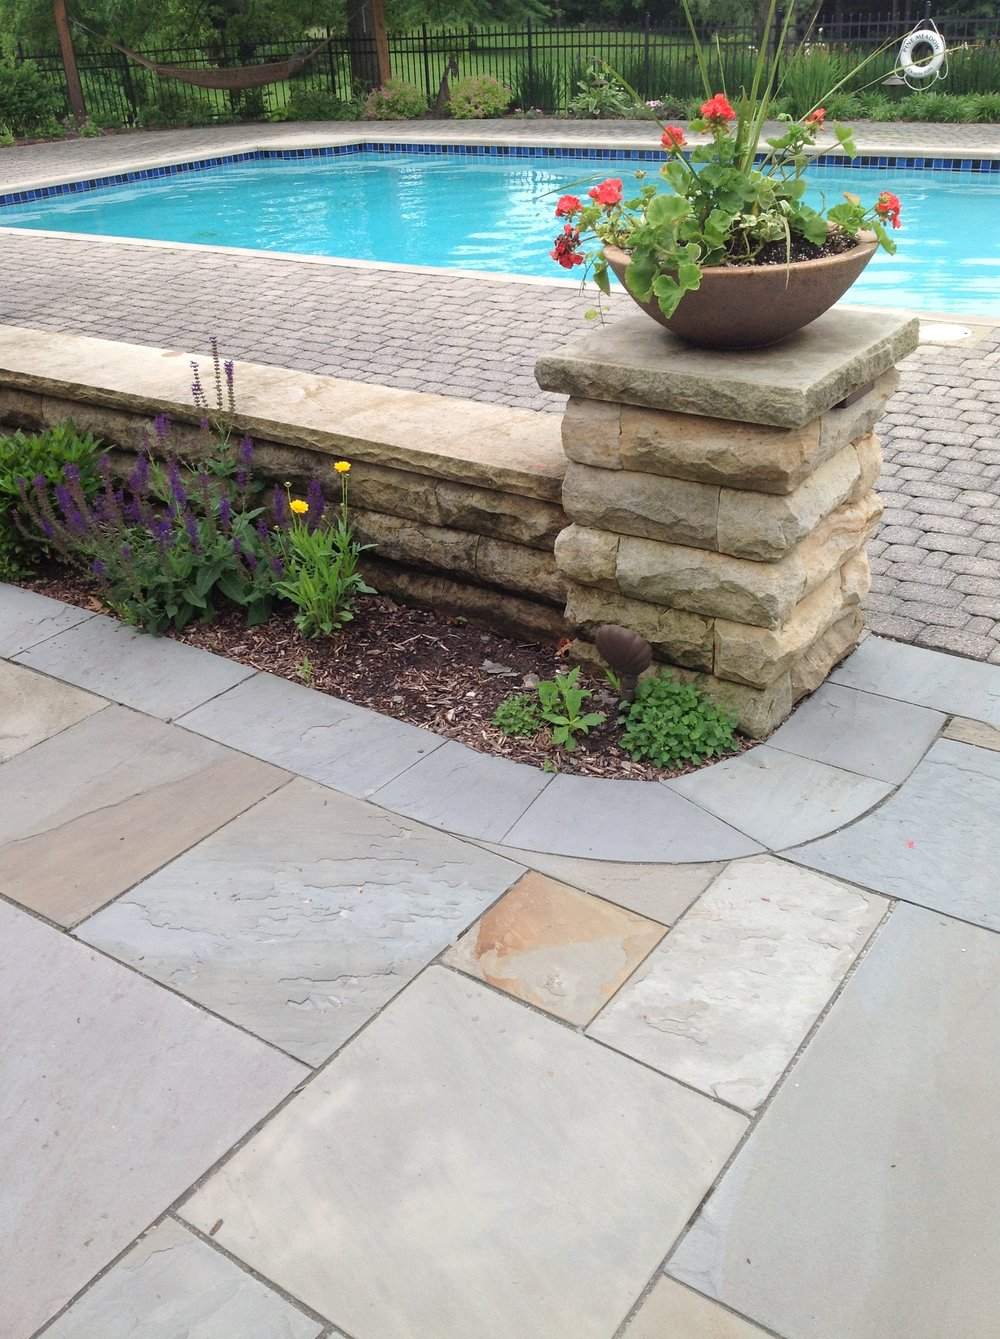 Unilock landscaping companies with top patio pavers and retaining wall in c, Ohio